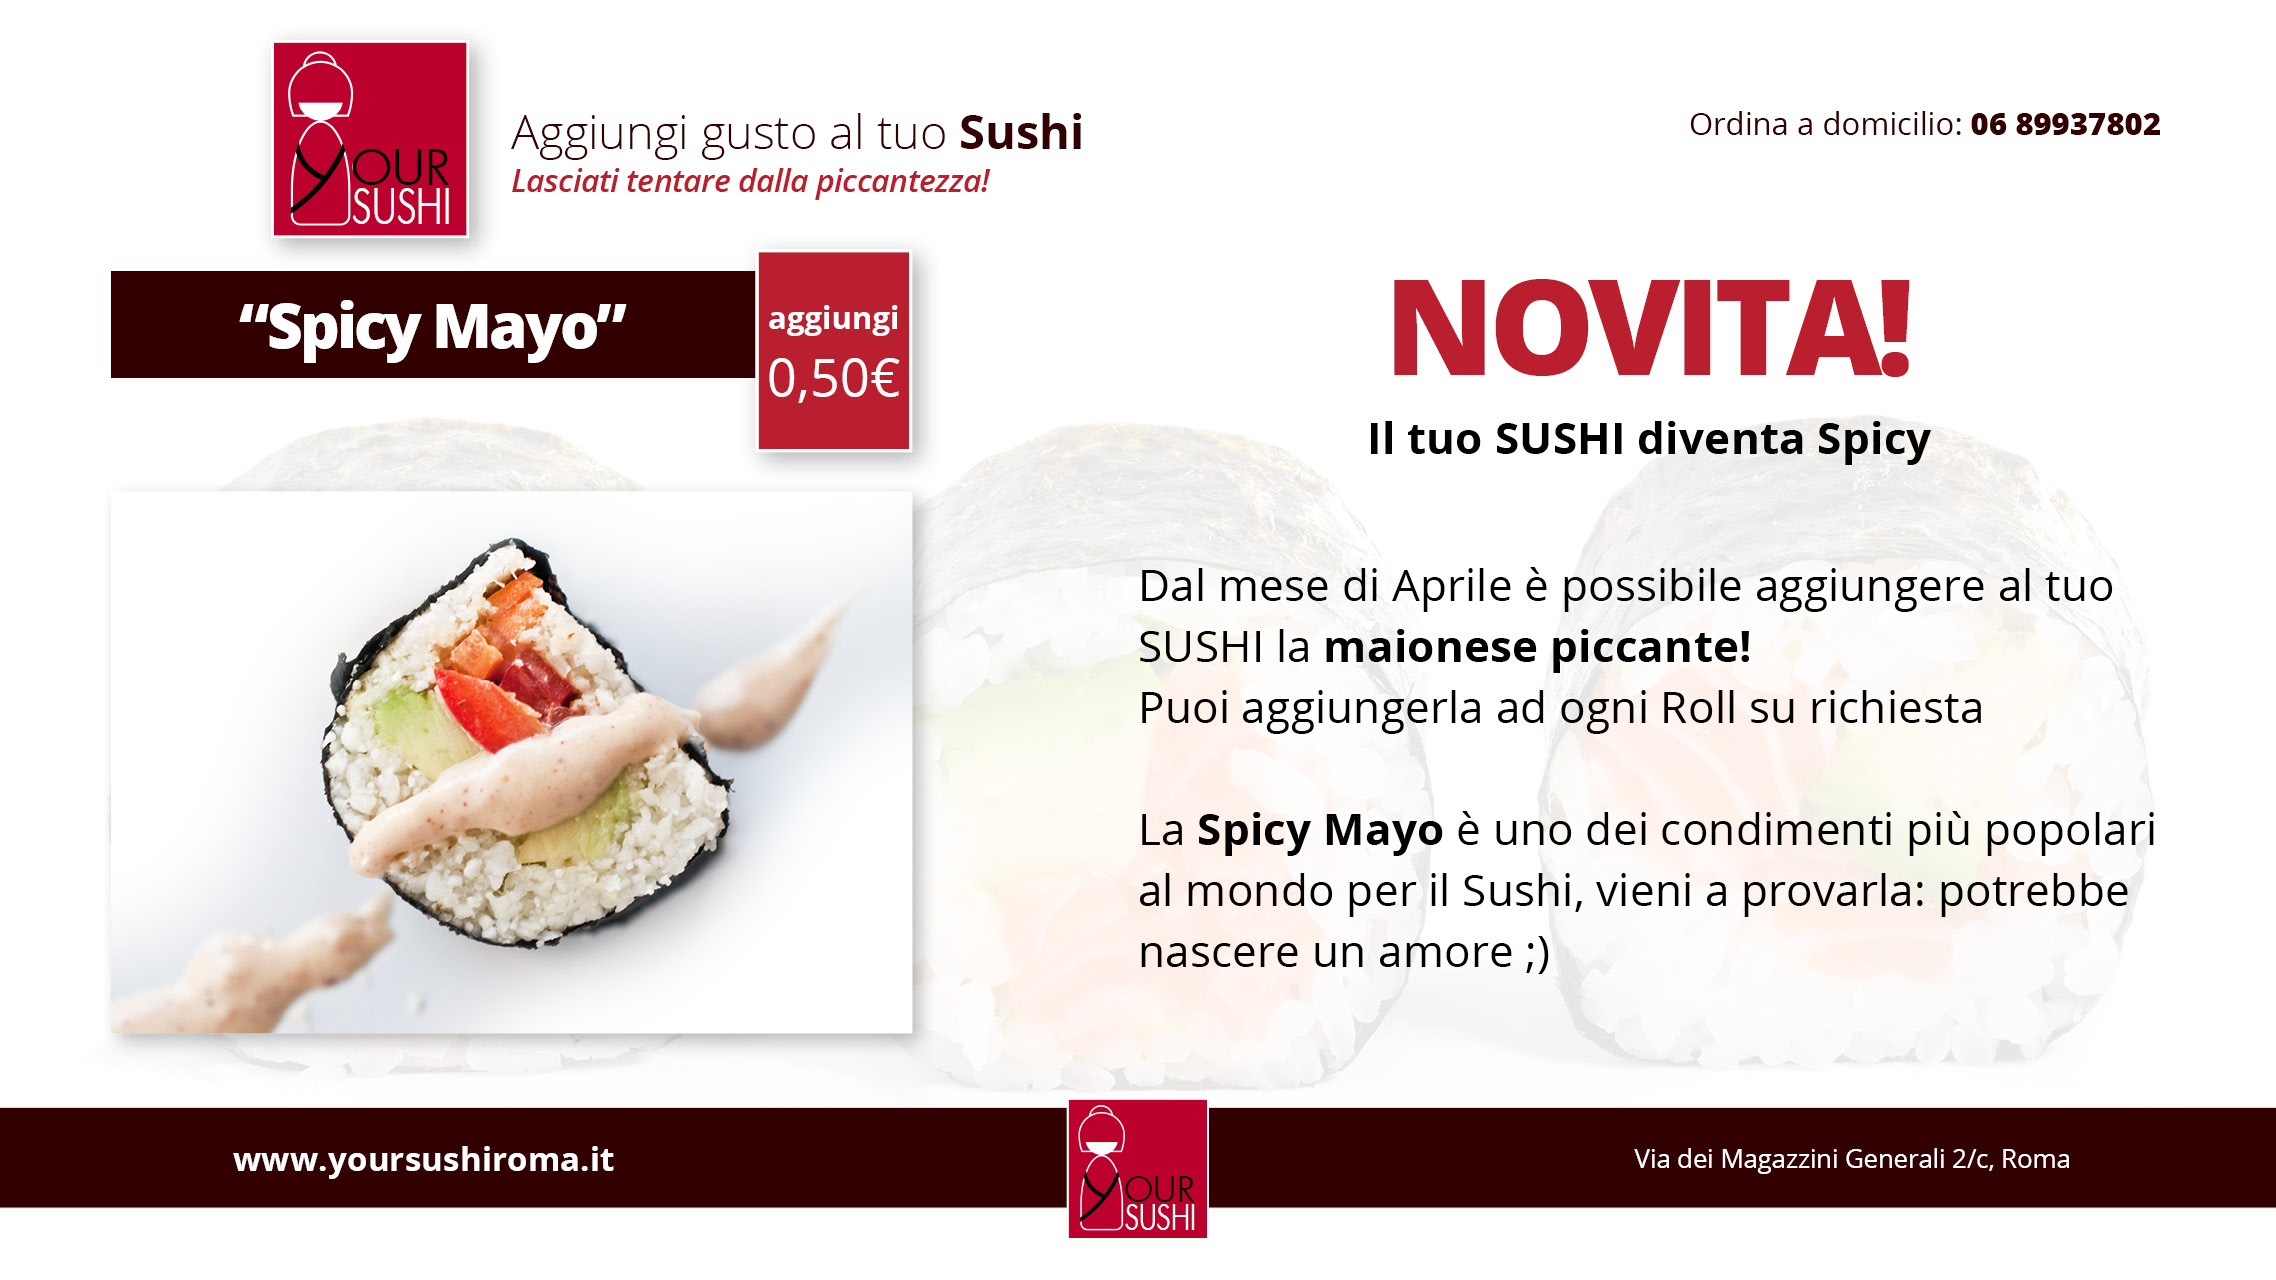 Spicy mayo Sushi con maionese piccante